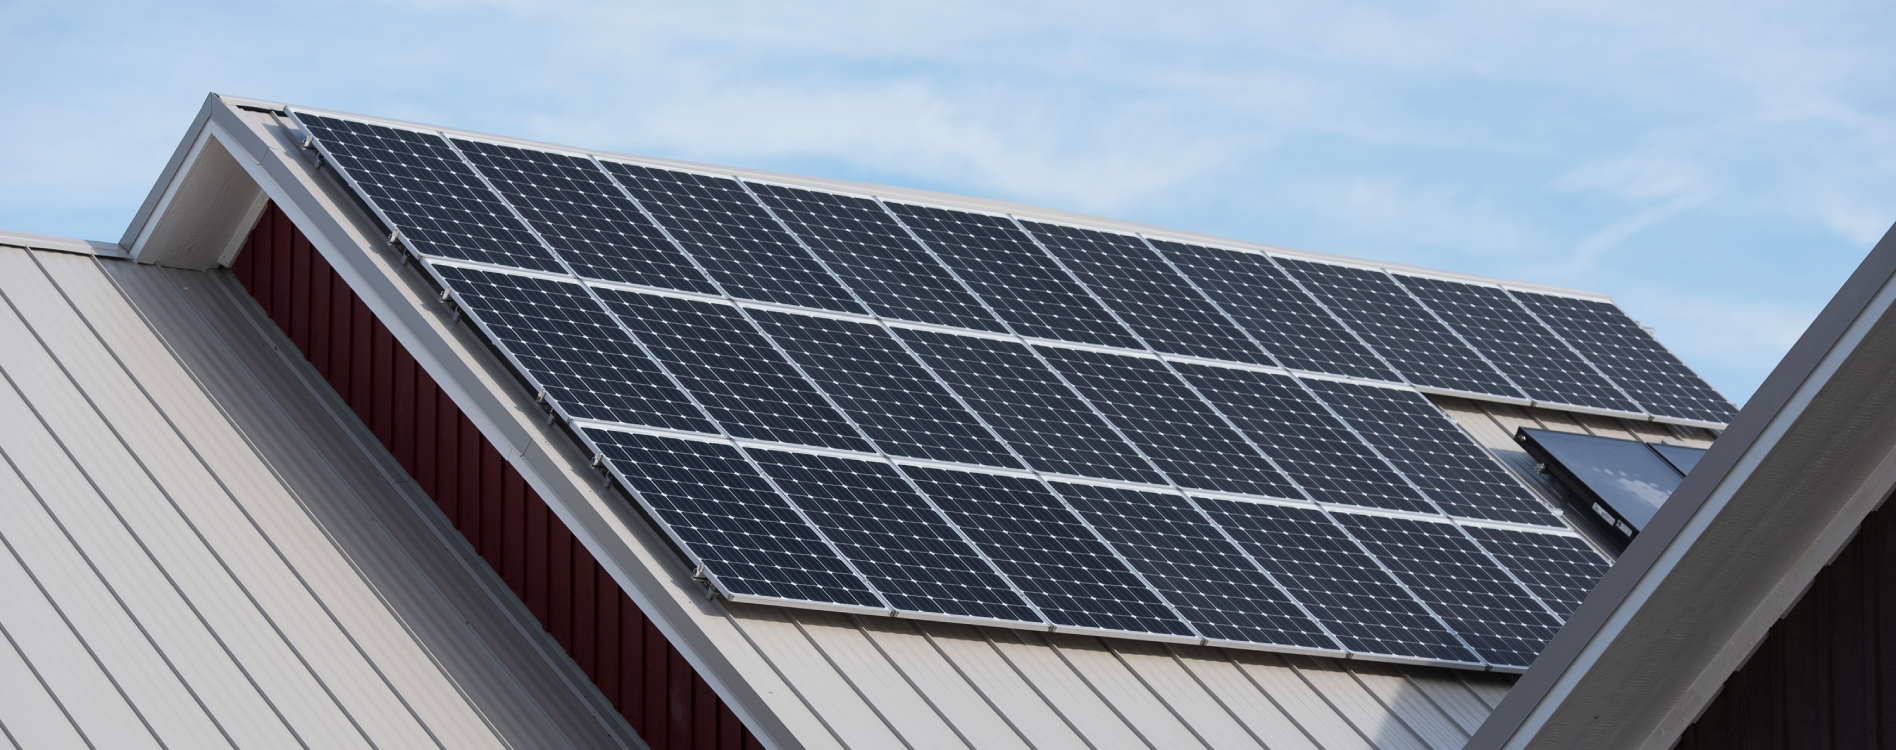 Top four benefits of installing solar panels on your home for Green home guide